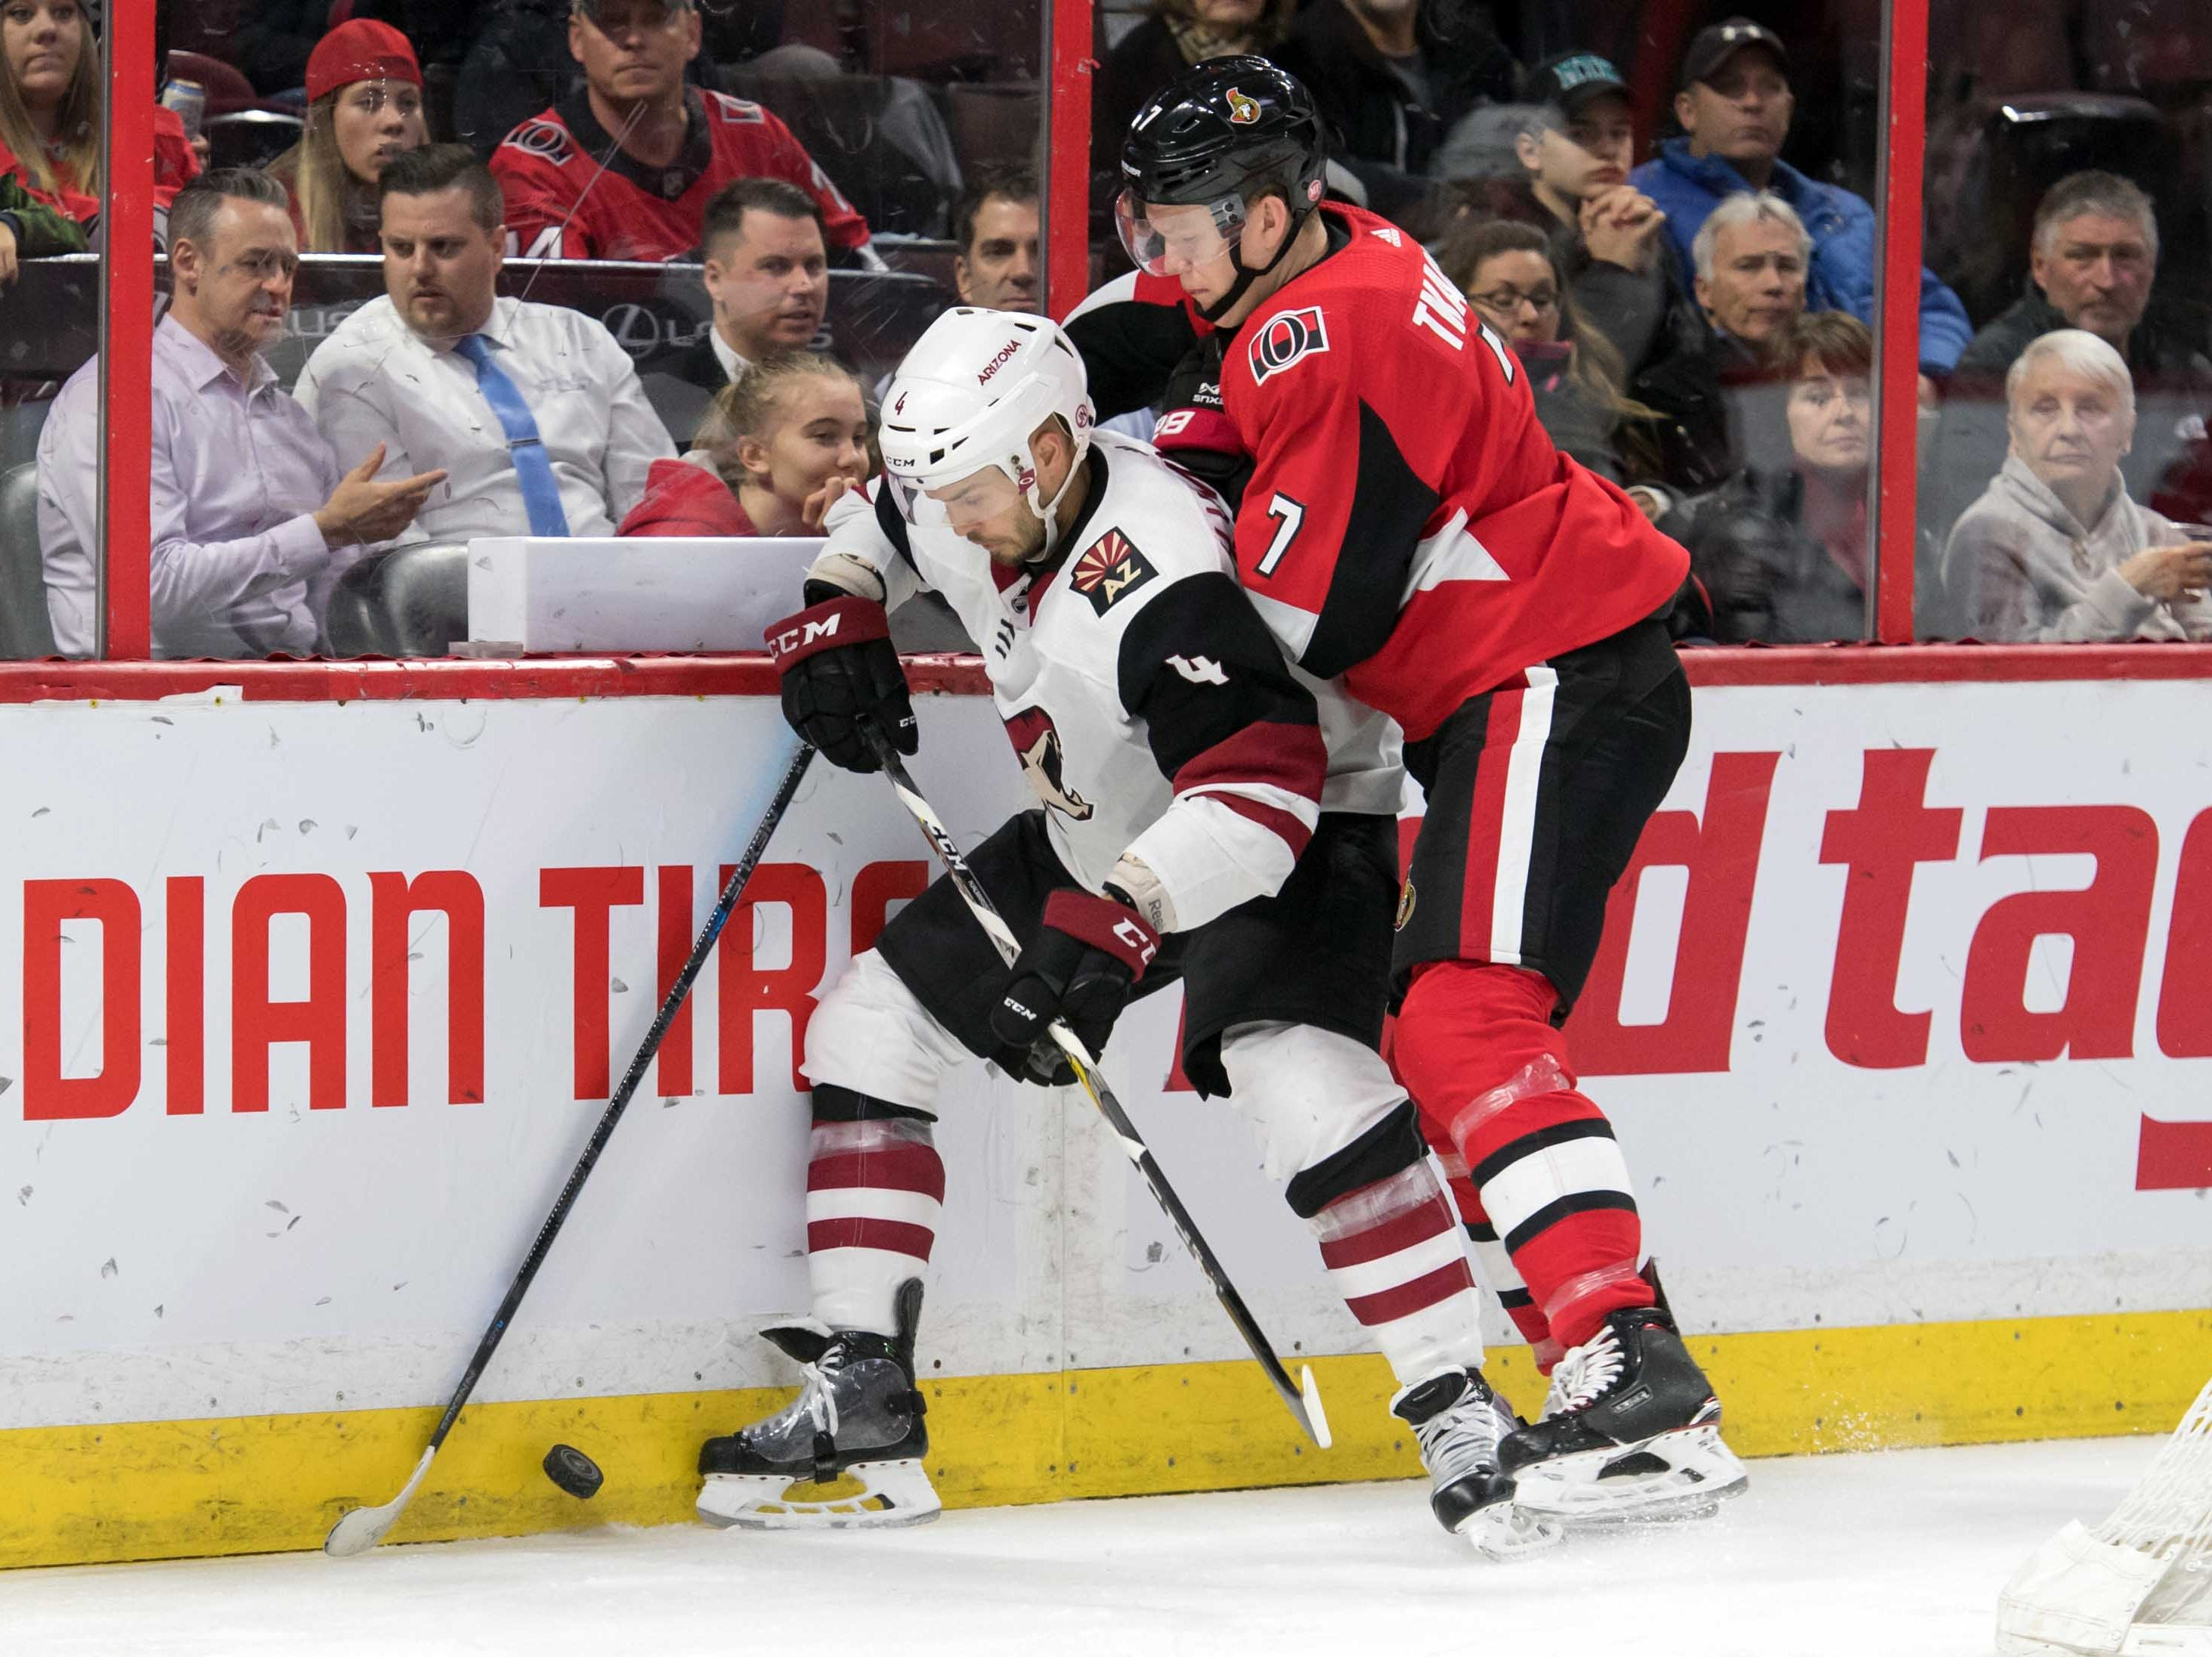 Jan 22, 2019; Ottawa, Ontario, CAN; Arizona Coyotes defenseman Niklas Hjalmarsson (4) and  Ottawa Senators left wing Brady Tkatchuk (7) battle for the puck in the second period at the Canadian Tire Centre. Mandatory Credit: Marc DesRosiers-USA TODAY Sports